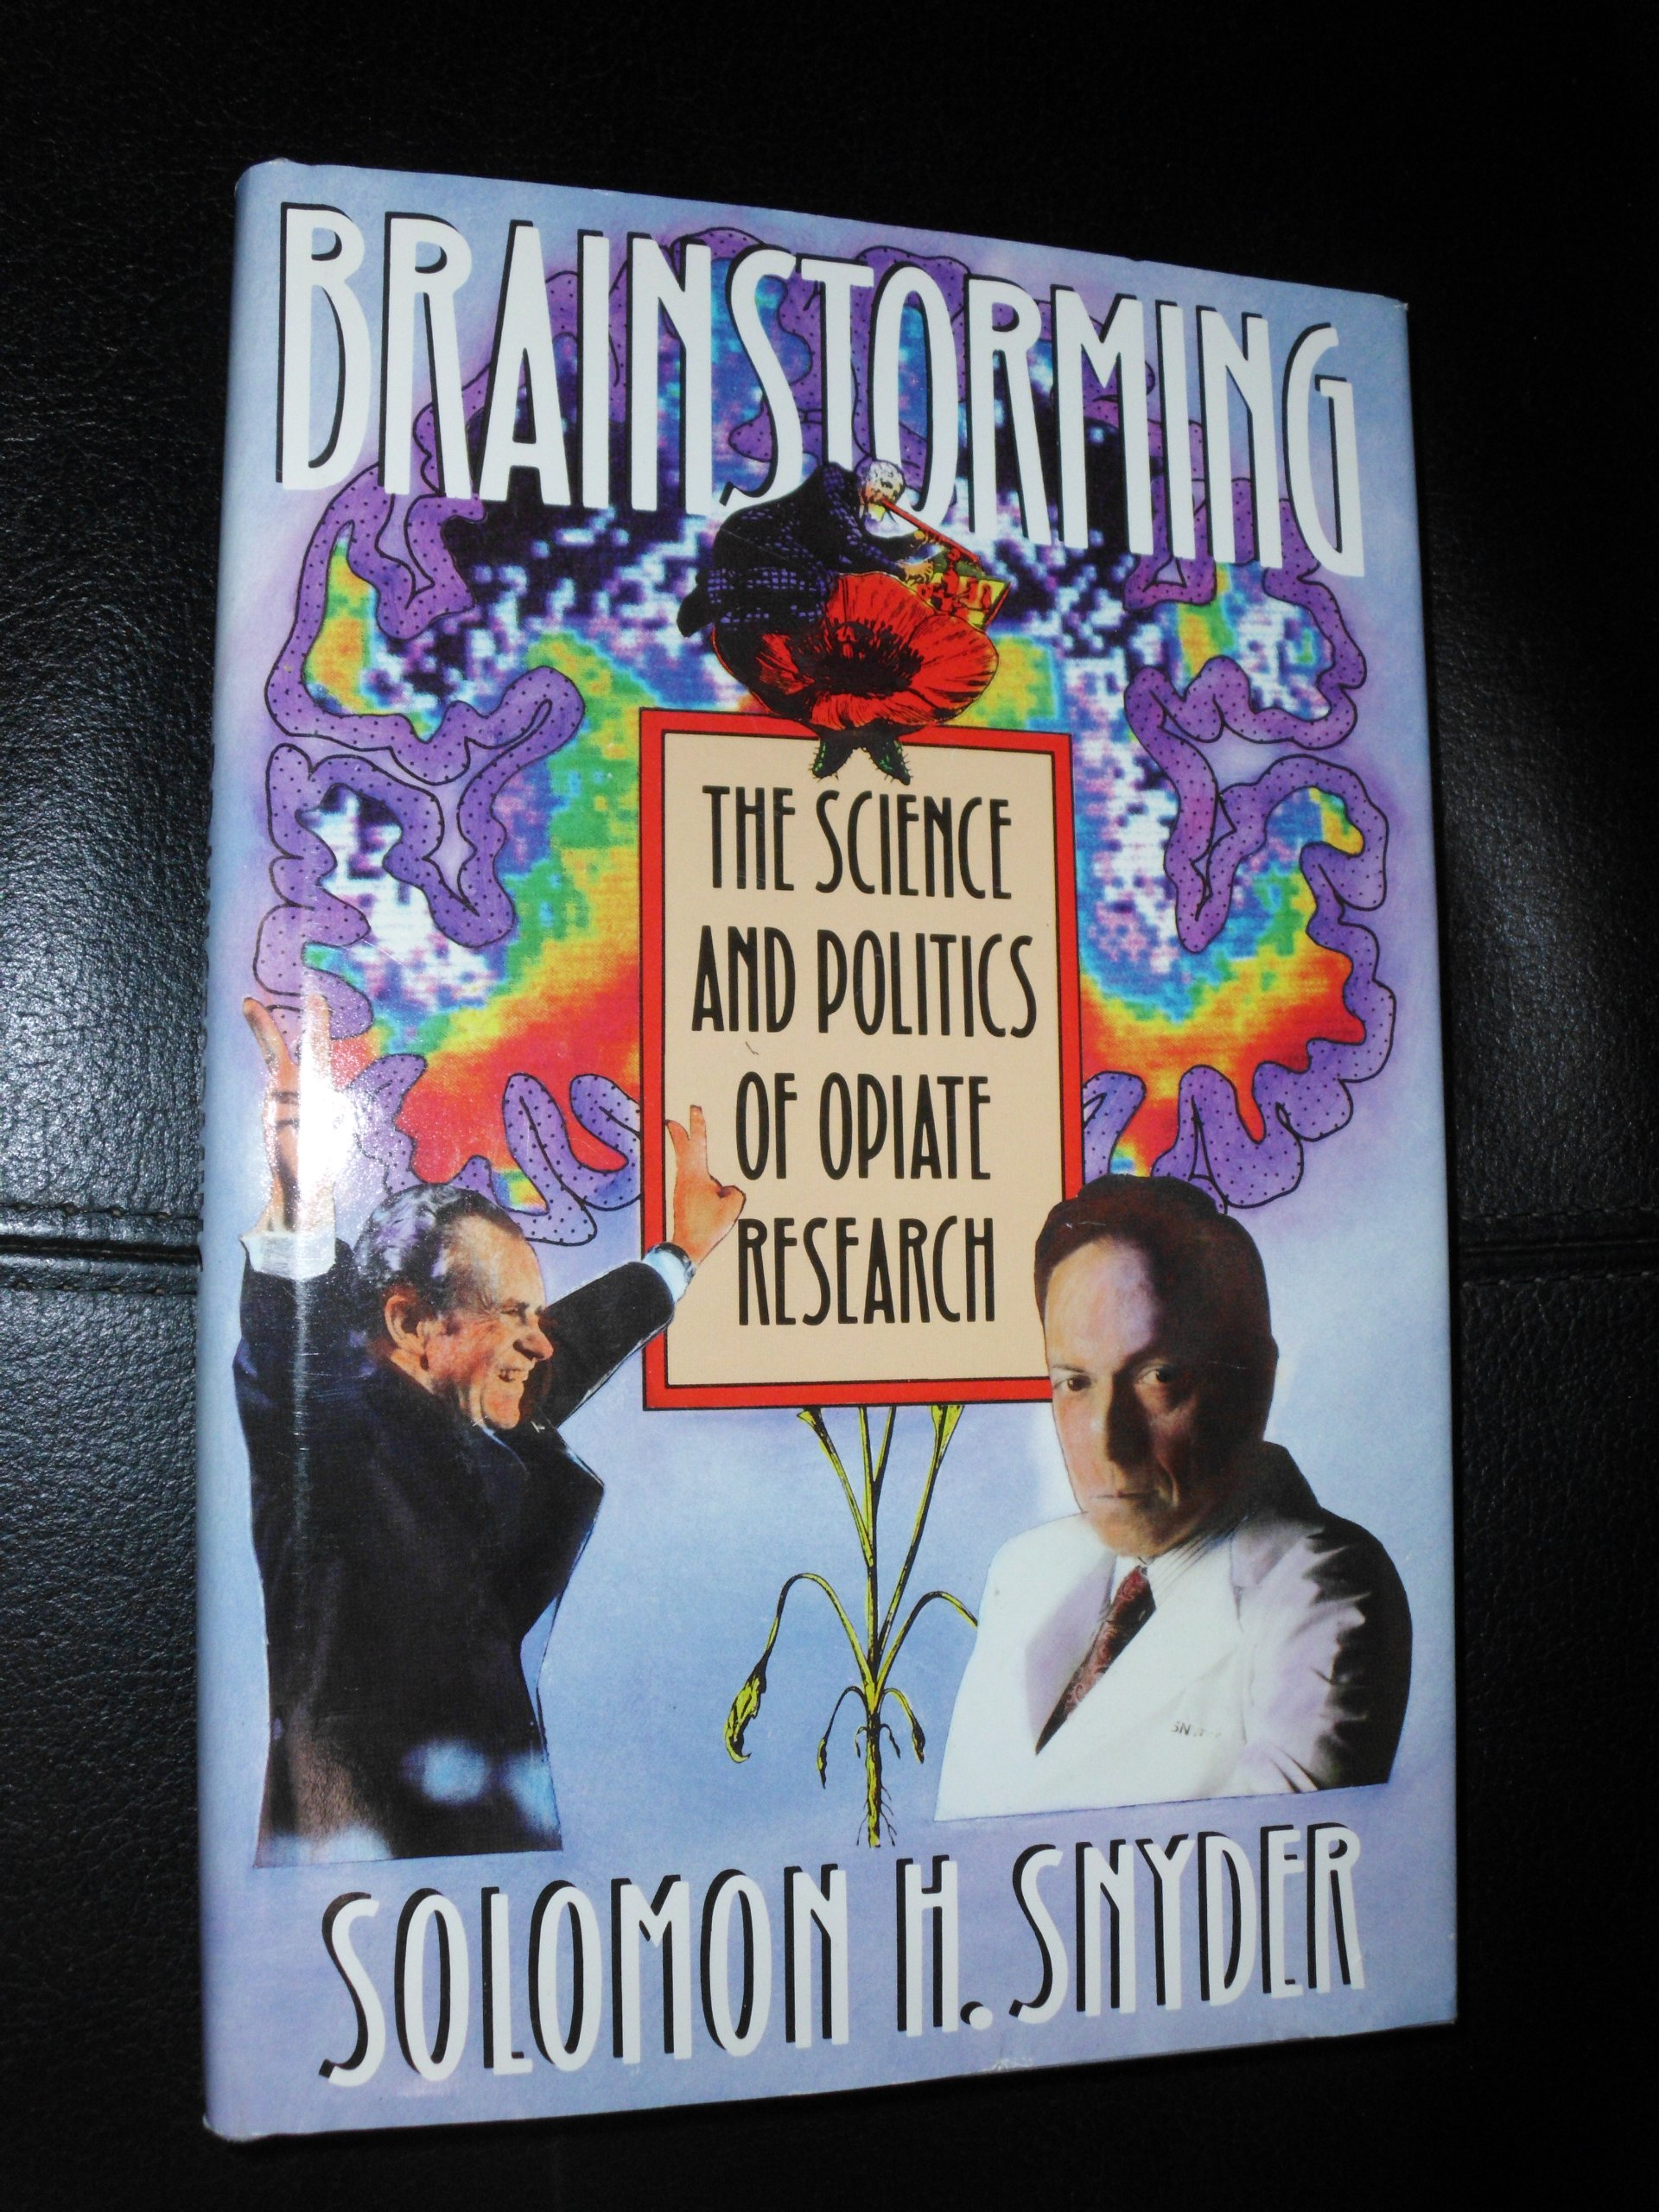 Brainstorming: The Science and Politics of Opiate Research